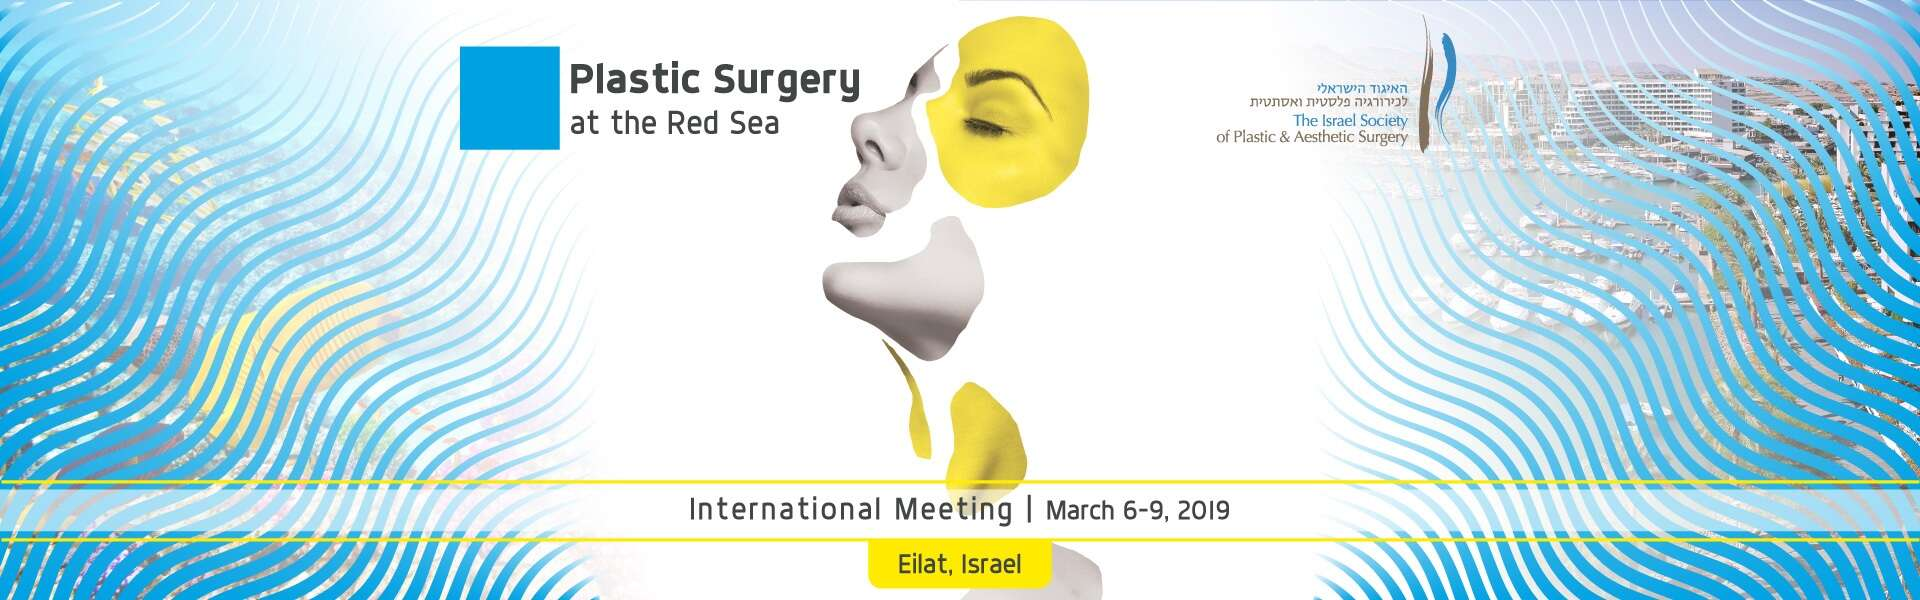 Plastic Surgery at the Red Sea 2019